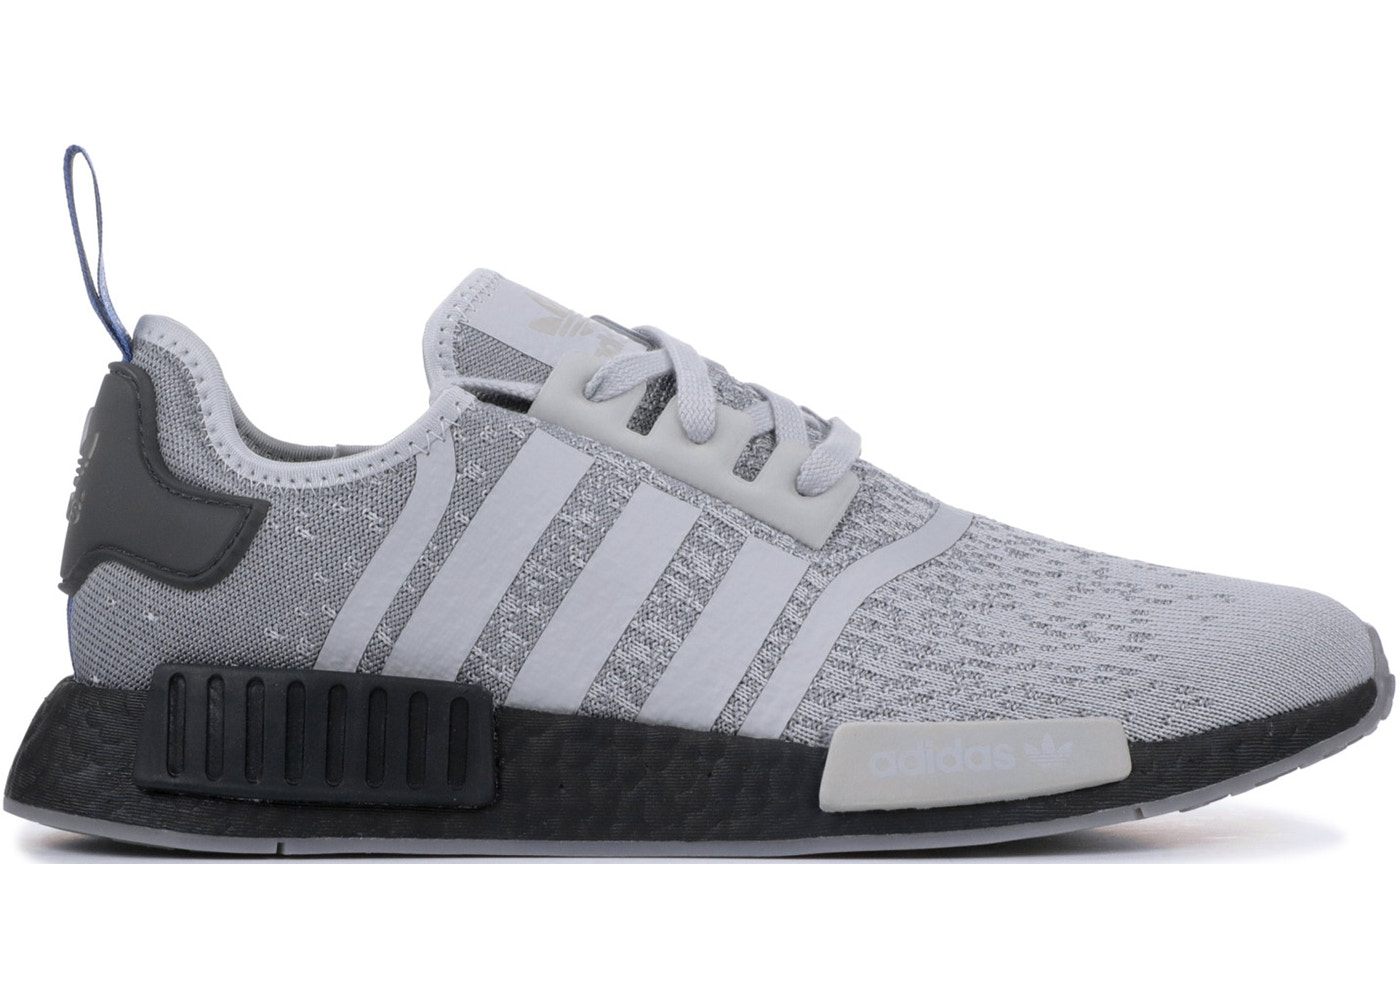 841b0dcdd1 Sell. or Ask. Size: 13. View All Bids. adidas NMD R1 JD Sports Silver Black  Royal